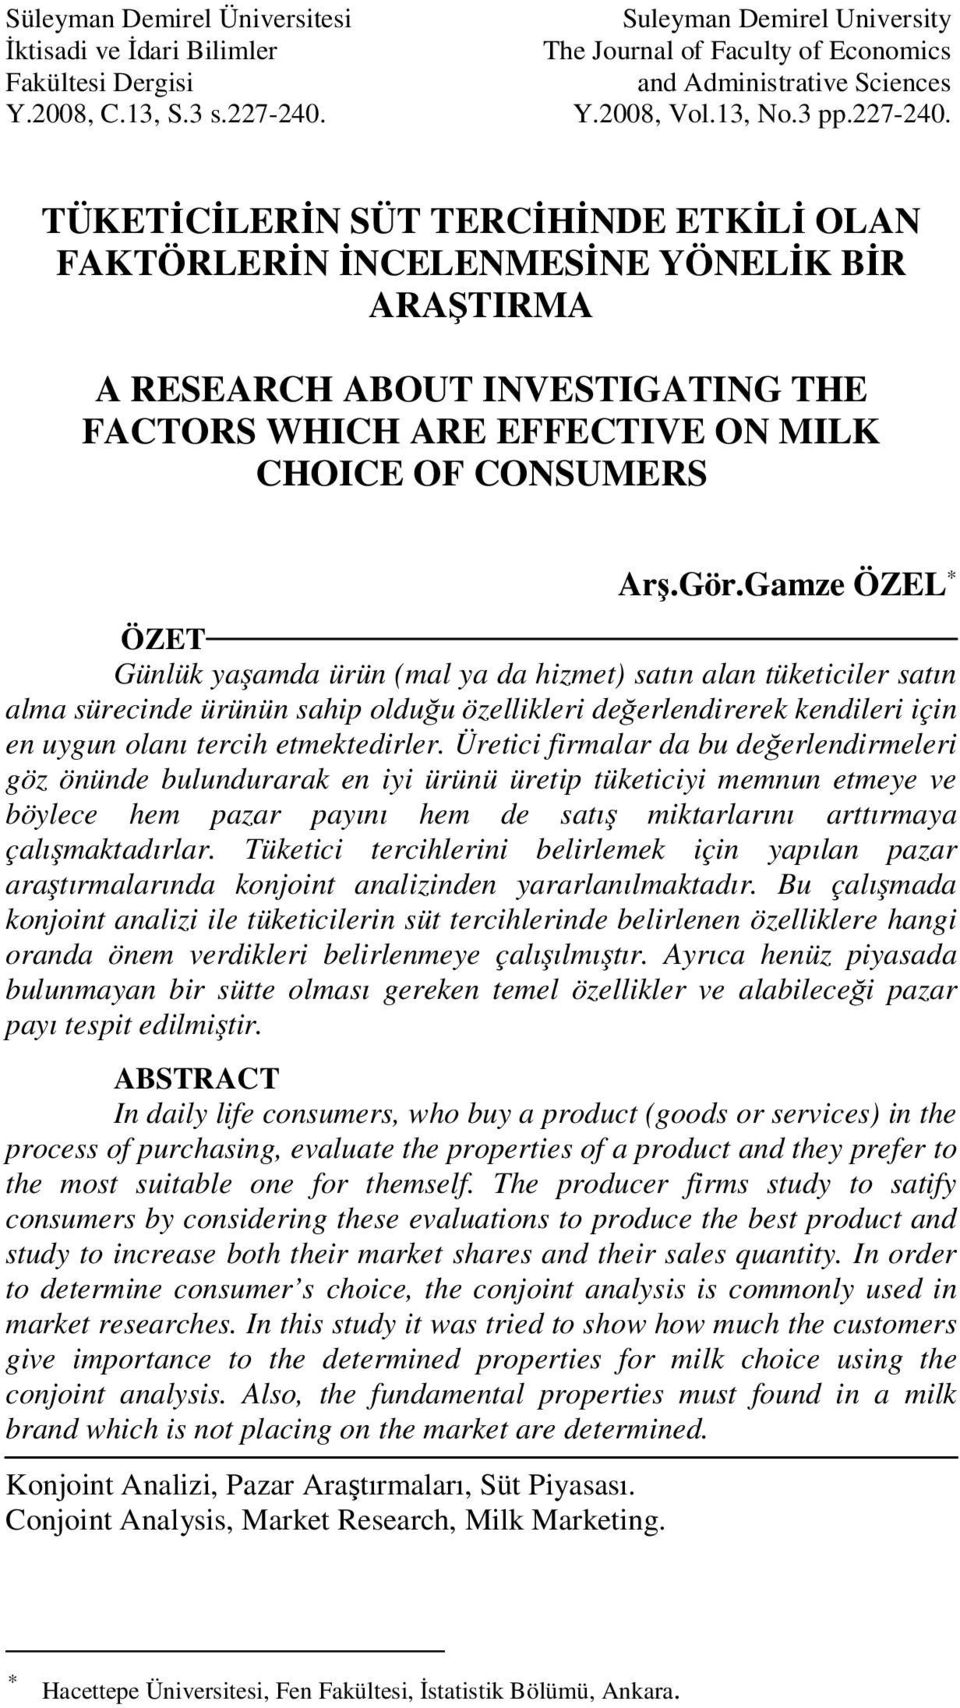 TÜKETİCİLERİN SÜT TERCİHİNDE ETKİLİ OLAN FAKTÖRLERİN İNCELENMESİNE YÖNELİK BİR ARAŞTIRMA A RESEARCH ABOUT INVESTIGATING THE FACTORS WHICH ARE EFFECTIVE ON MILK CHOICE OF CONSUMERS Arş.Gör.